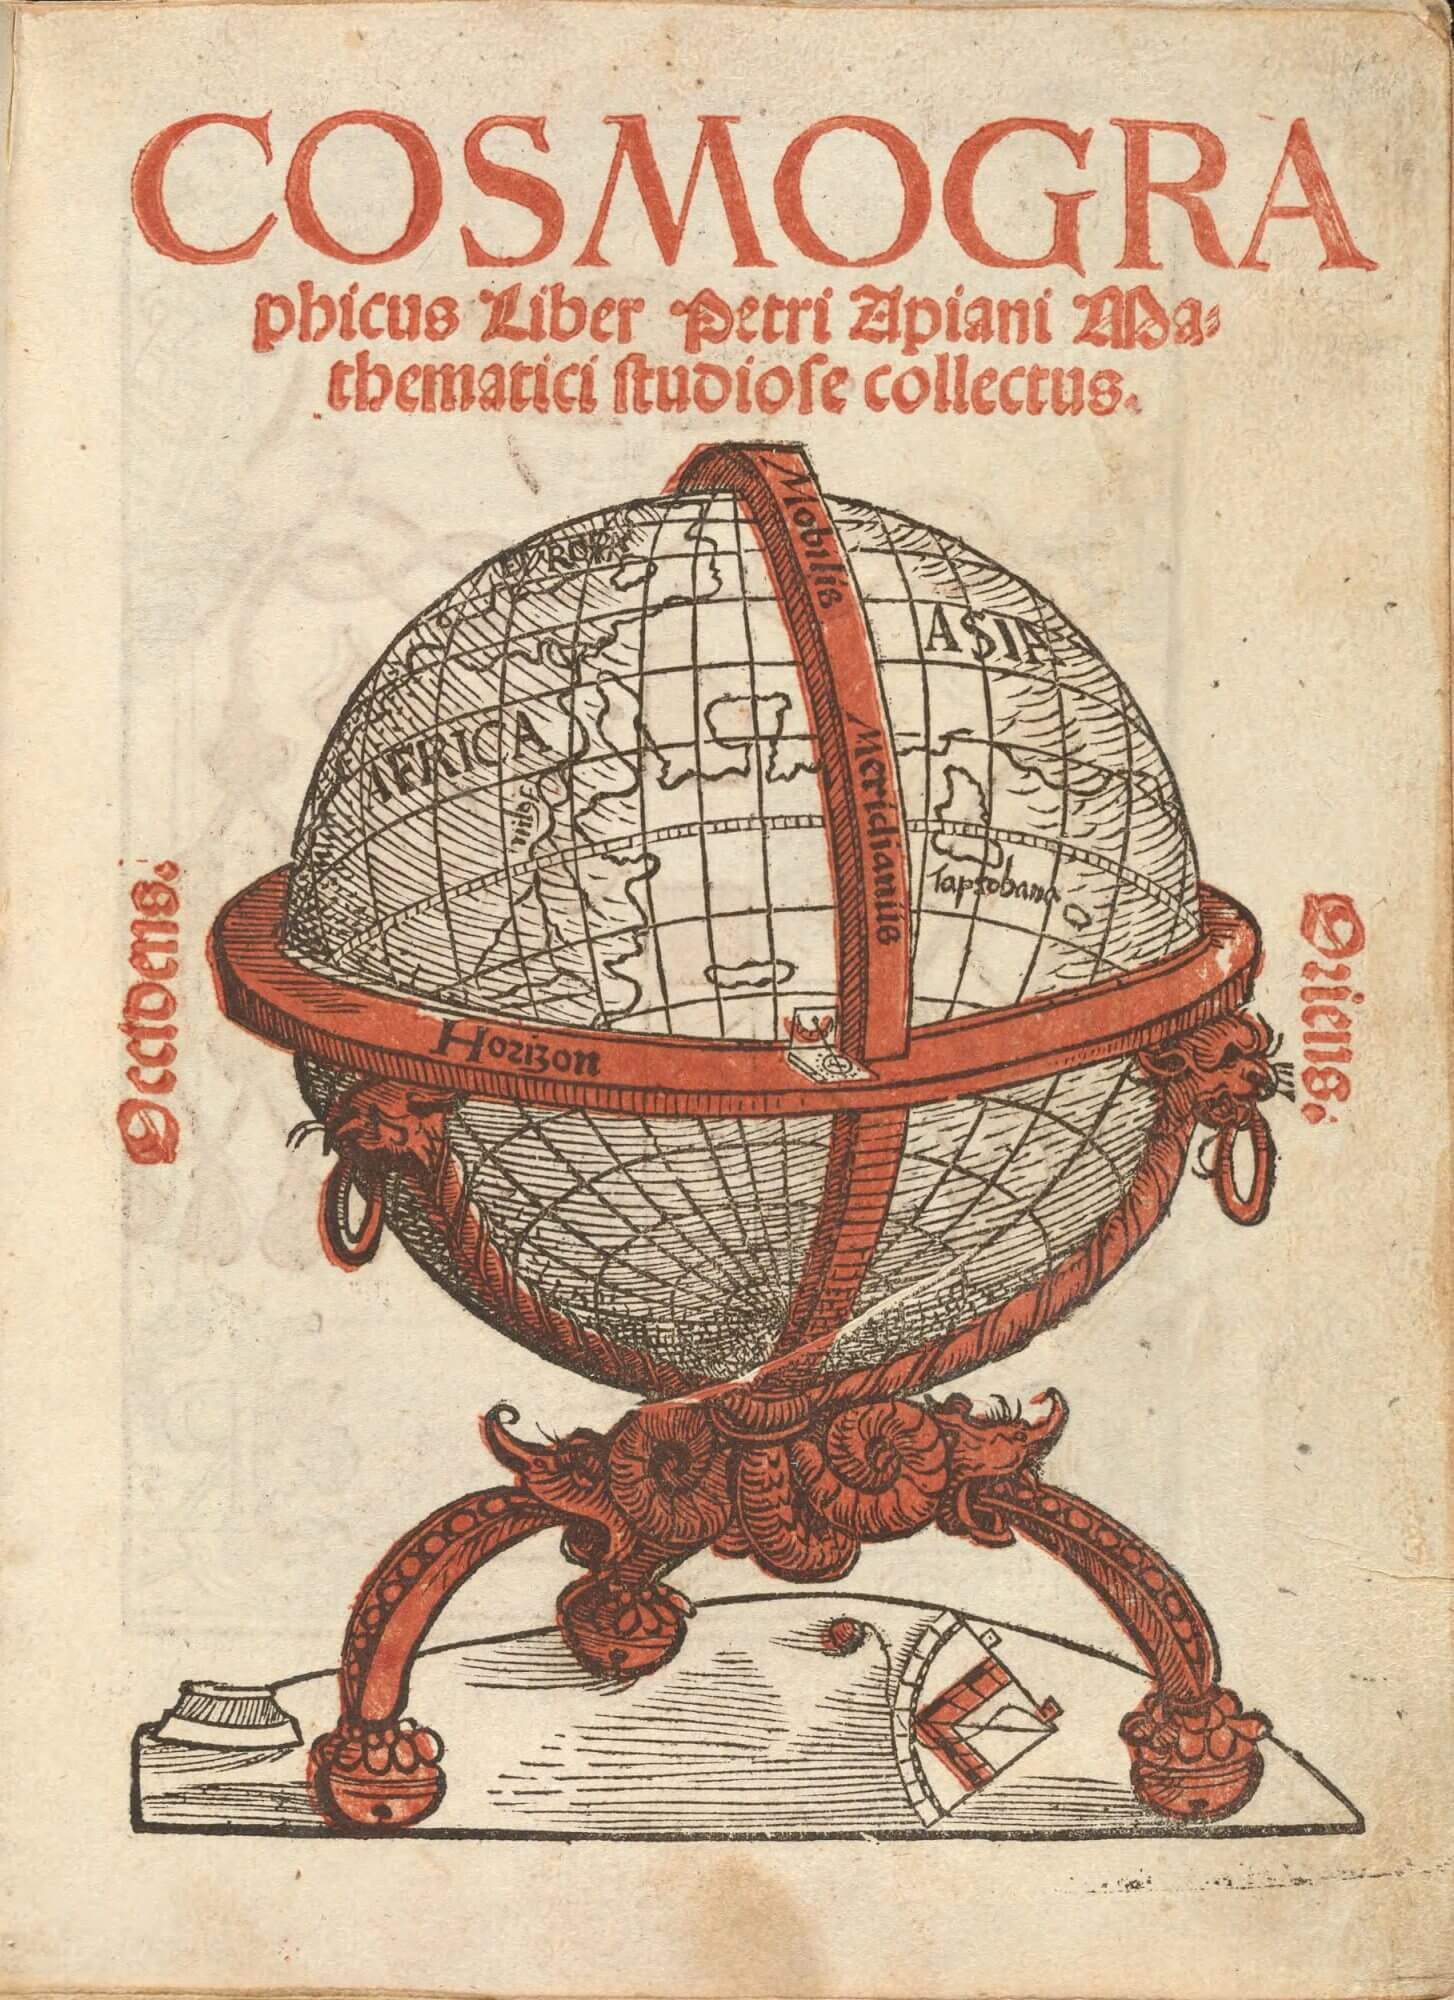 This title page for the first edition of Peter Apian's Cosmographicus has been printed in both black and red ink.